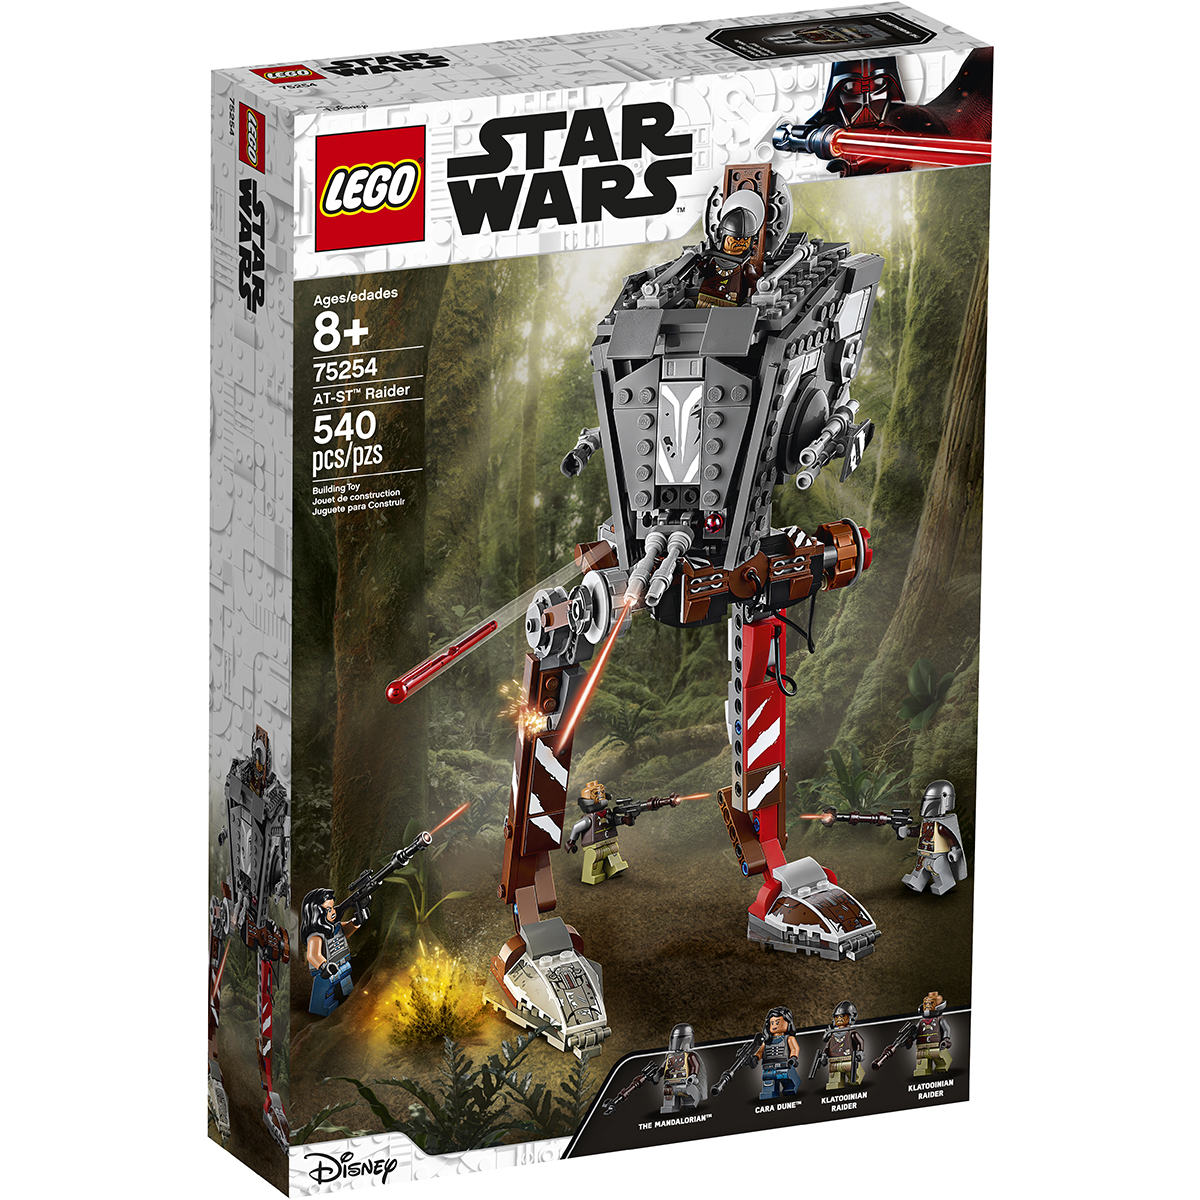 Lego® Star Wars™ - At-st Raider (75254)